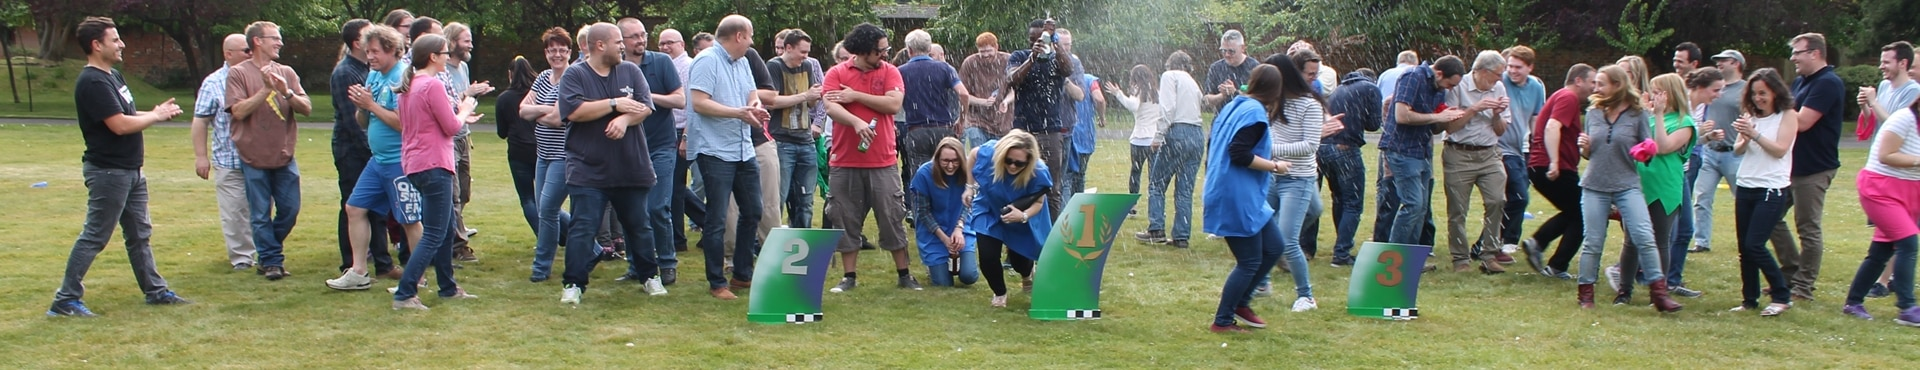 A group of people spraying champagne and celebrating winning an outdoor team building activity